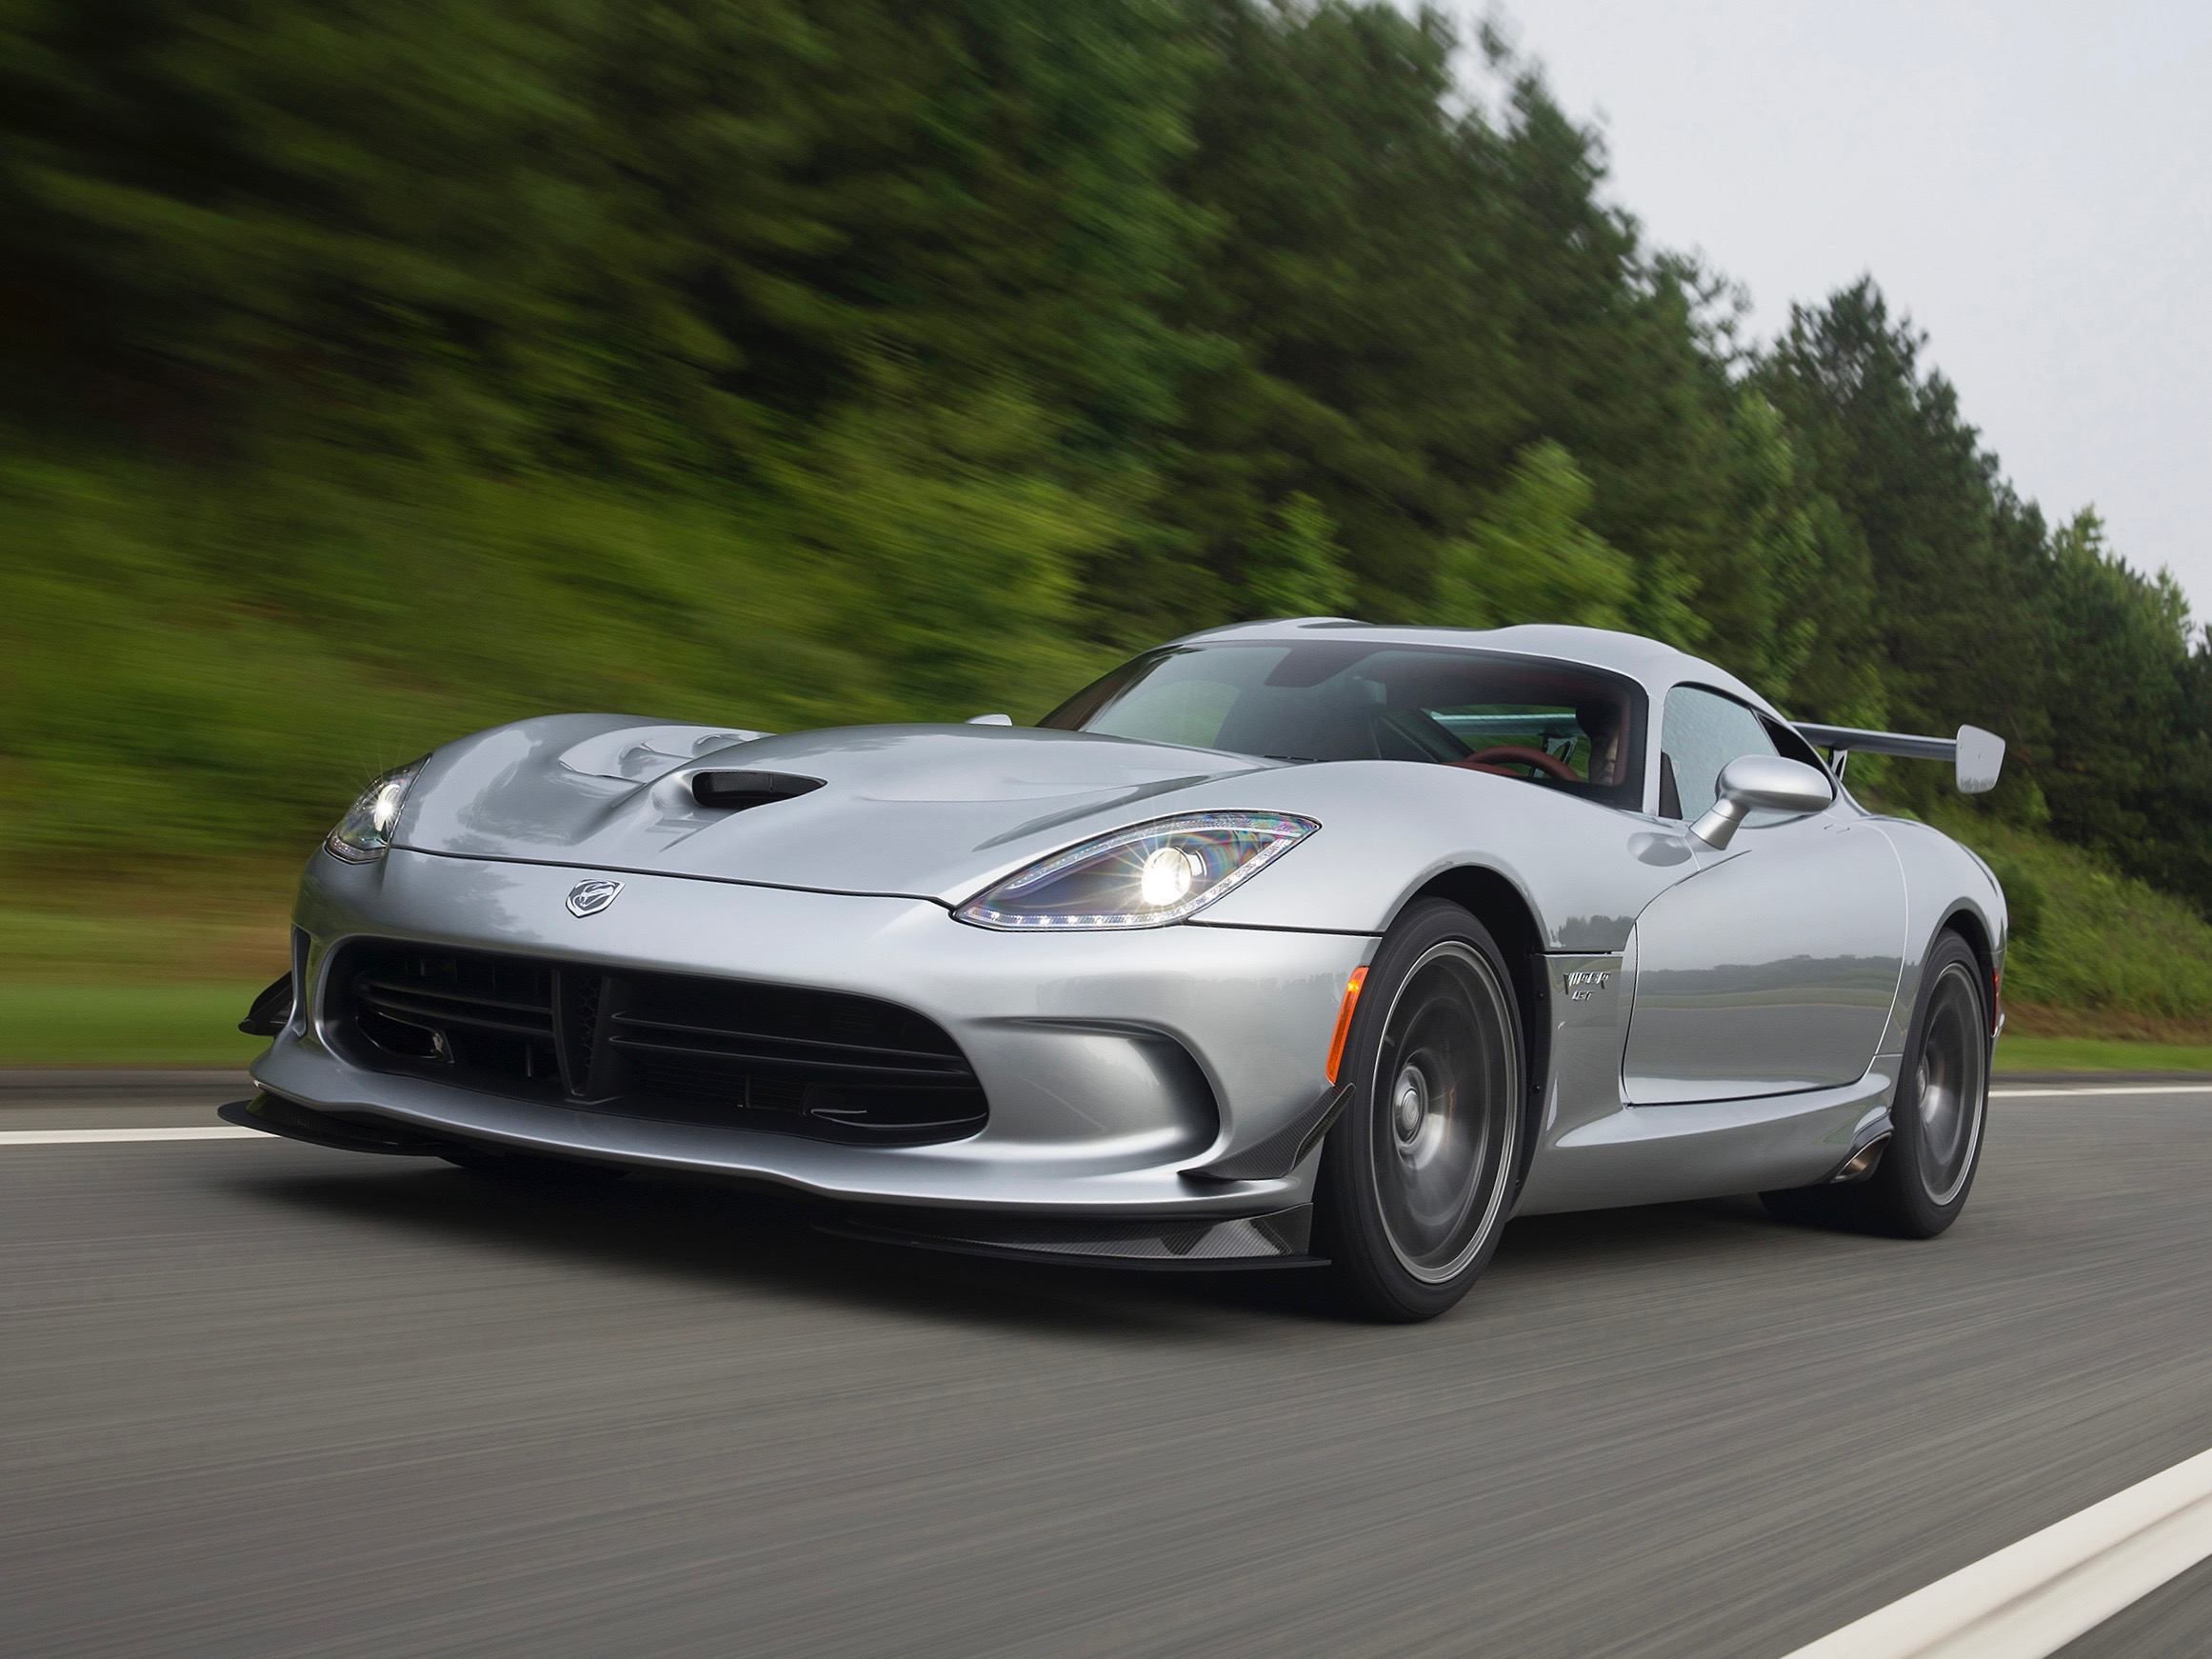 2017 Dodge Viper Review